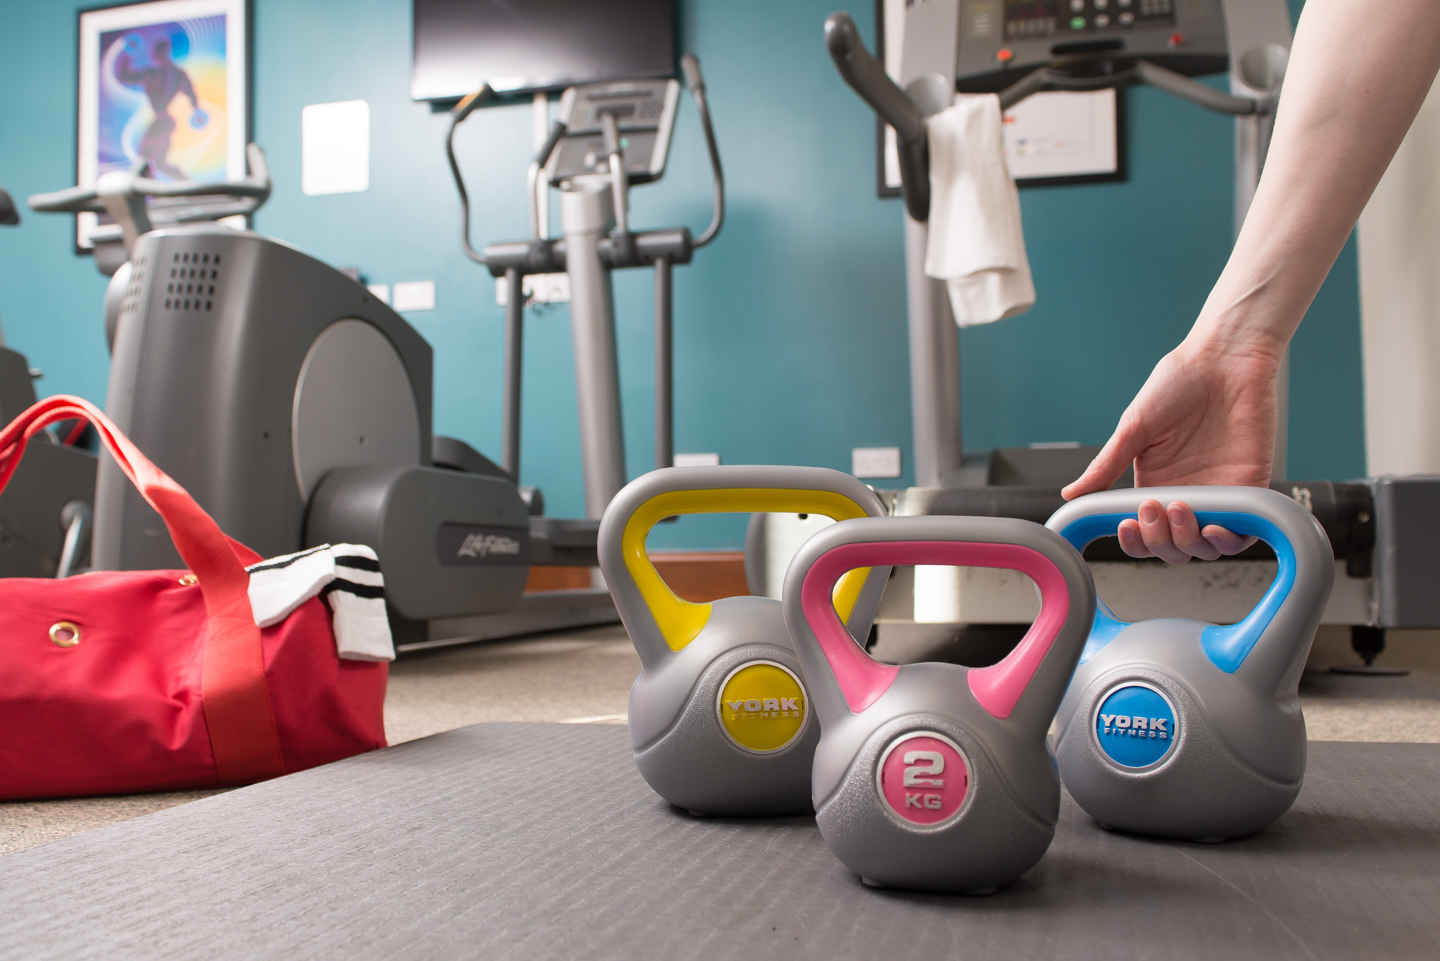 Gym at Staybridge Suites Newcastle - Citybase Apartments